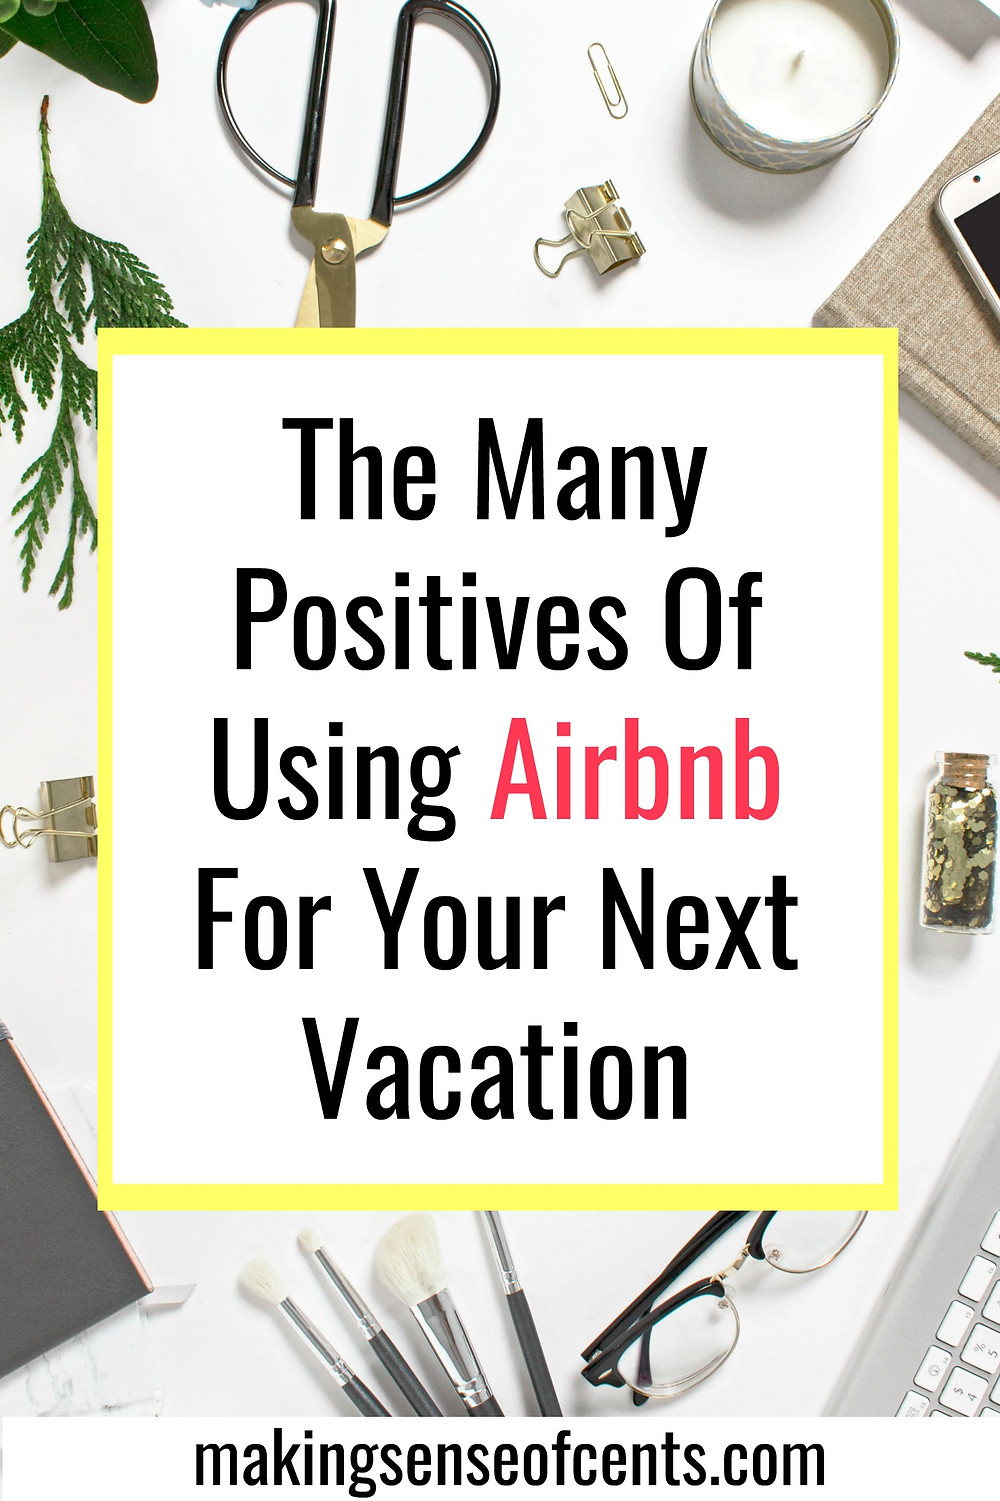 The Many Positives Of Using Airbnb